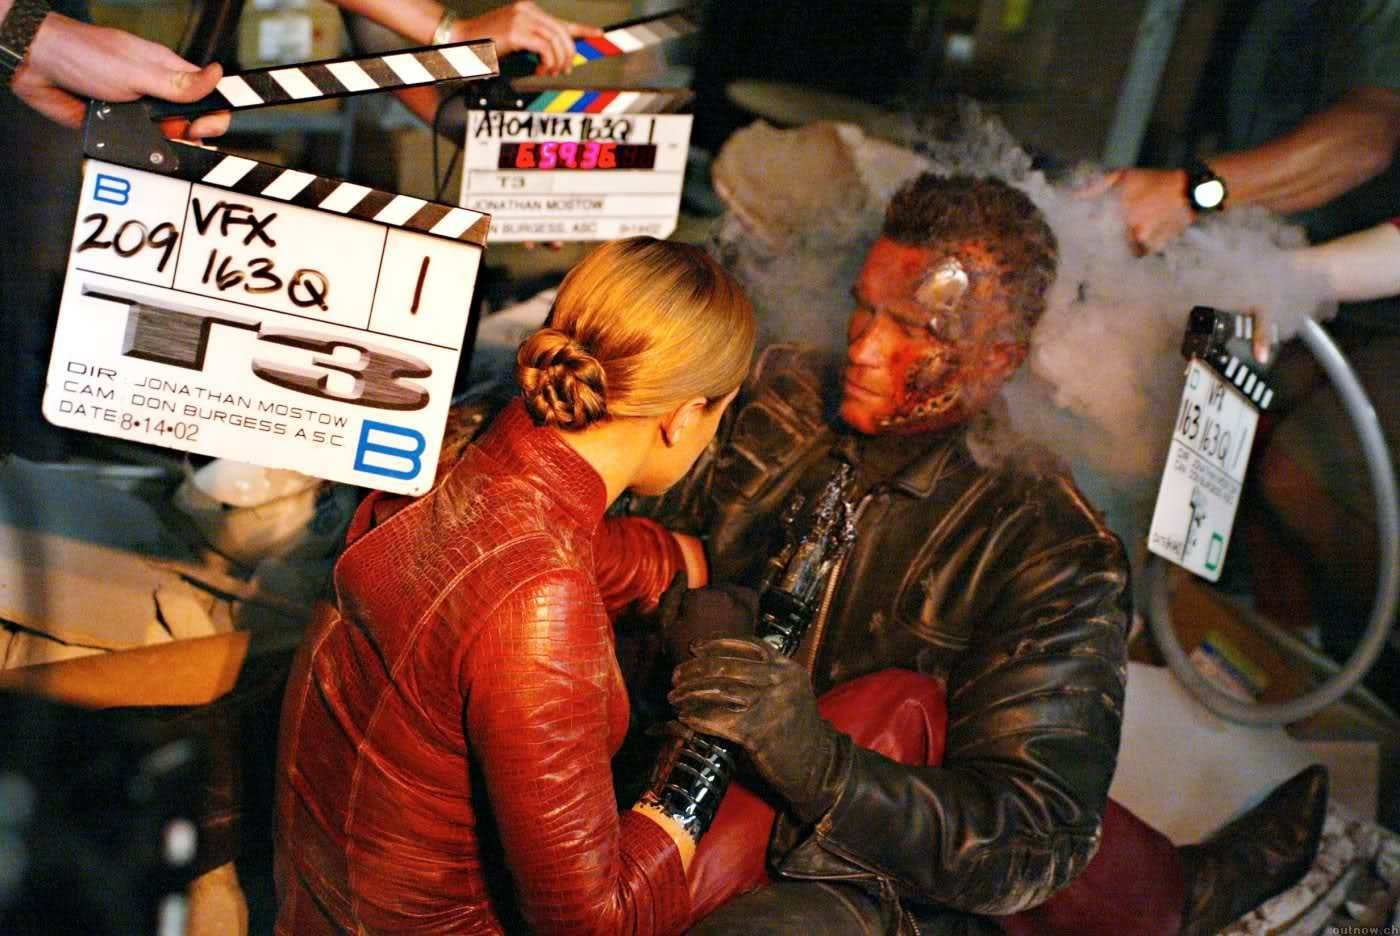 Terminator 3: Rise of the Machines Behind the Scenes Photos & Tech Specs